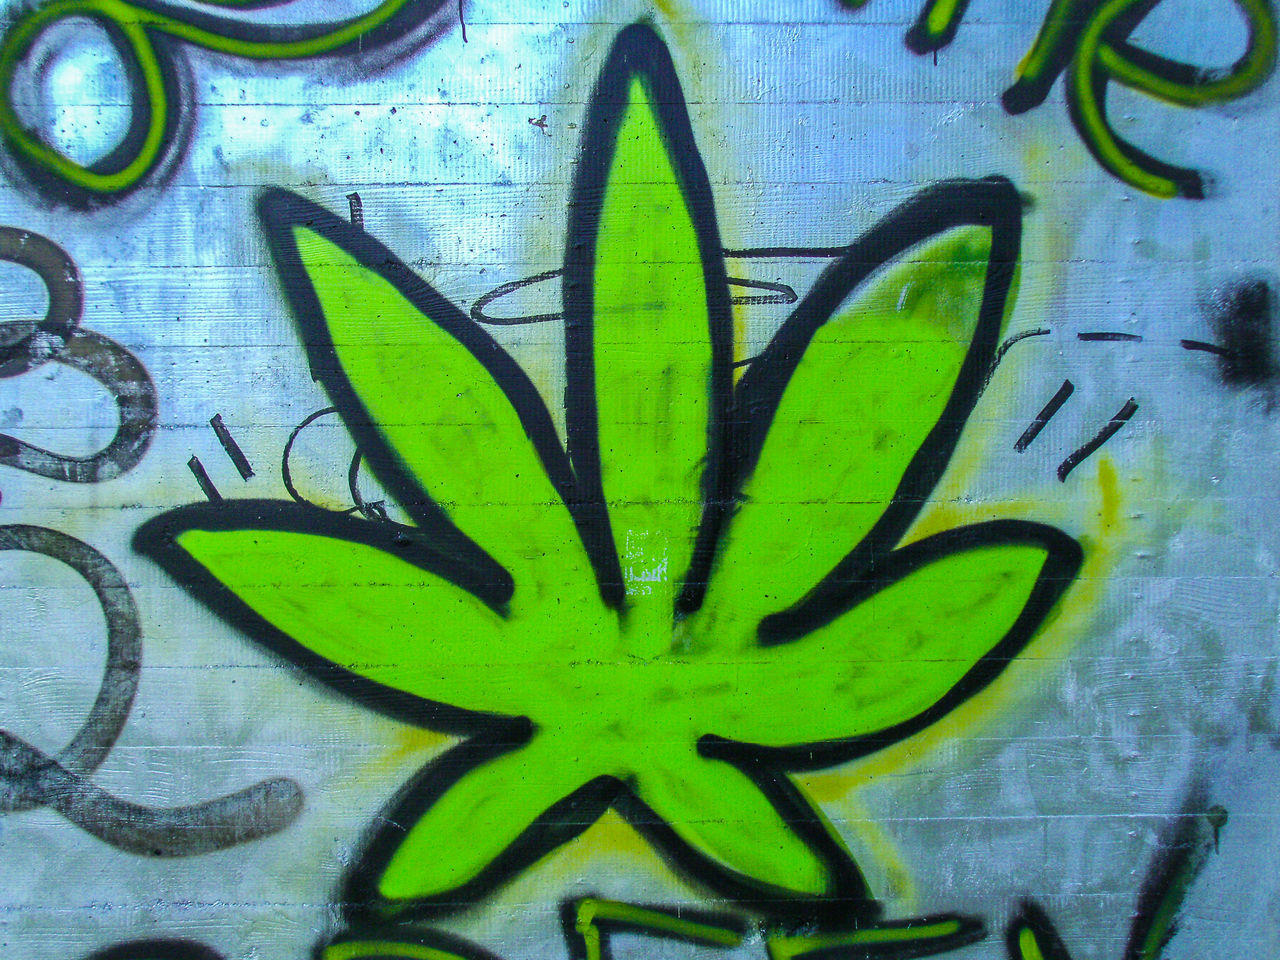 Canabis Communication Creativity Day Graffiti Green Color Leaf No People Outdoors Spray Paint